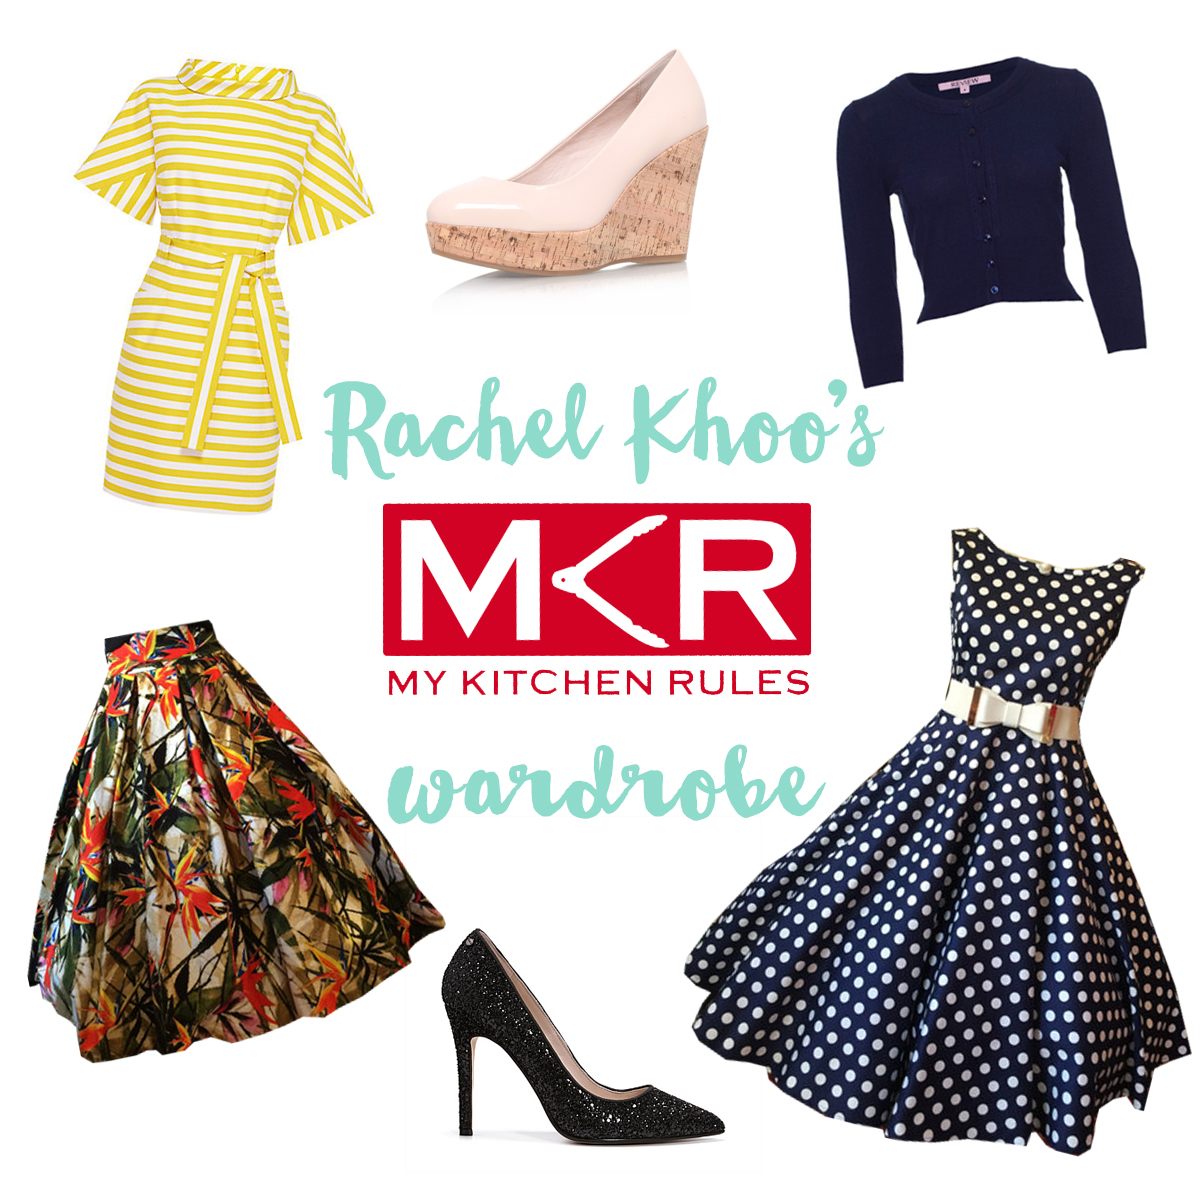 Rachel Khoo's My Kitchen Rules Wardrobe